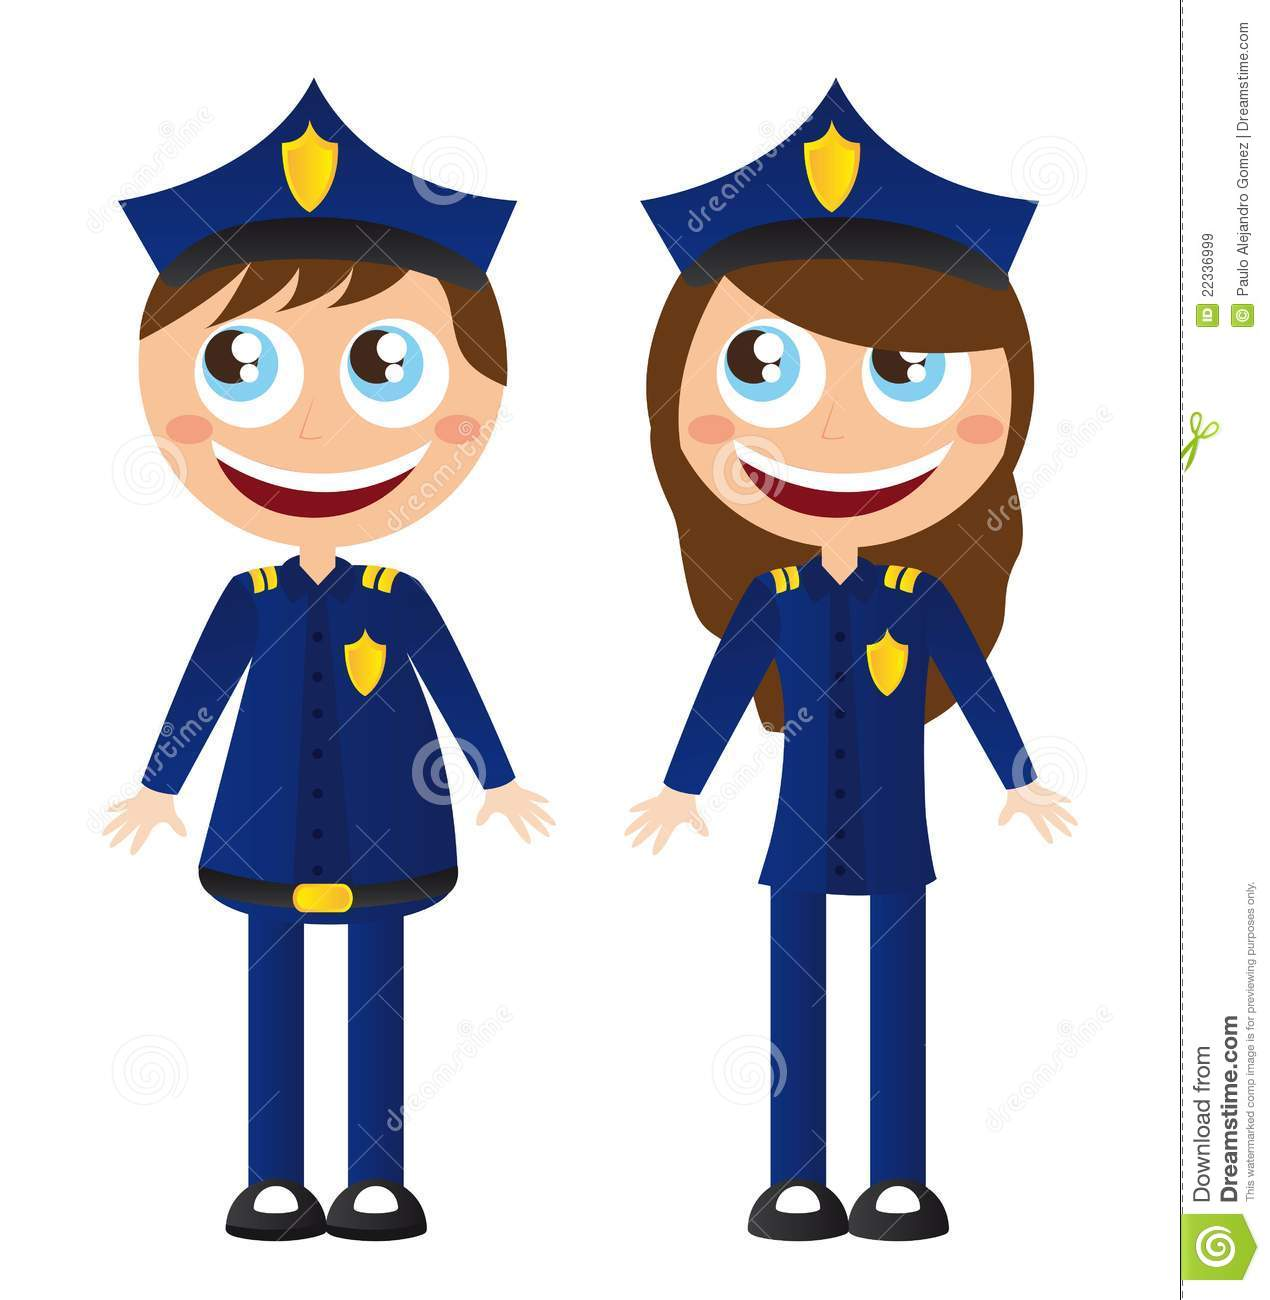 Police Cartoons Royalty Free Stock Images - Image: 22336999